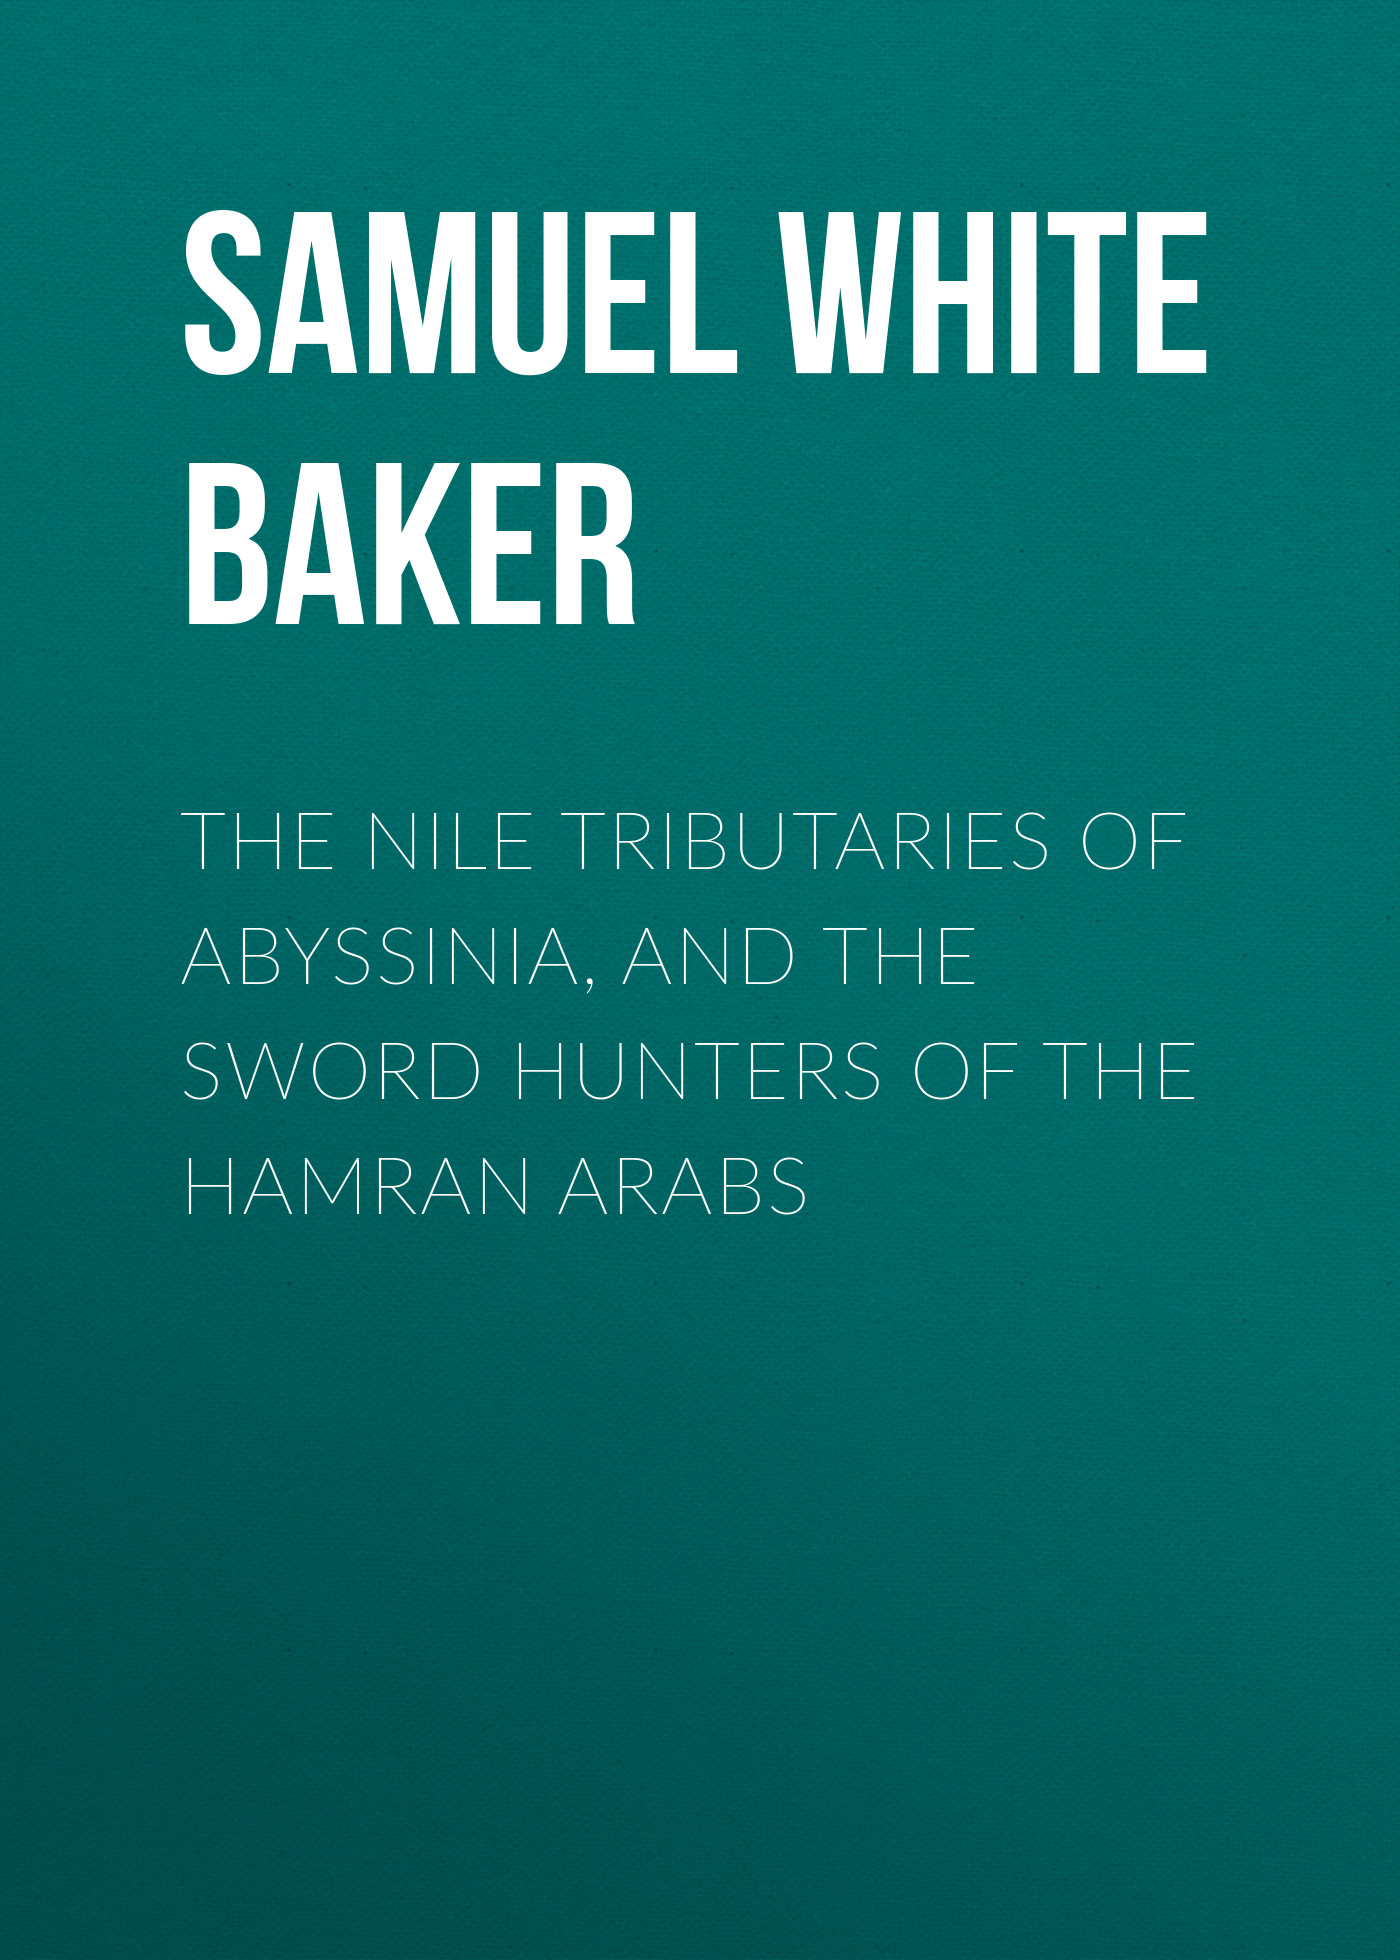 Samuel White Baker The Nile Tributaries of Abyssinia, and the Sword Hunters of the Hamran Arabs the artful baker